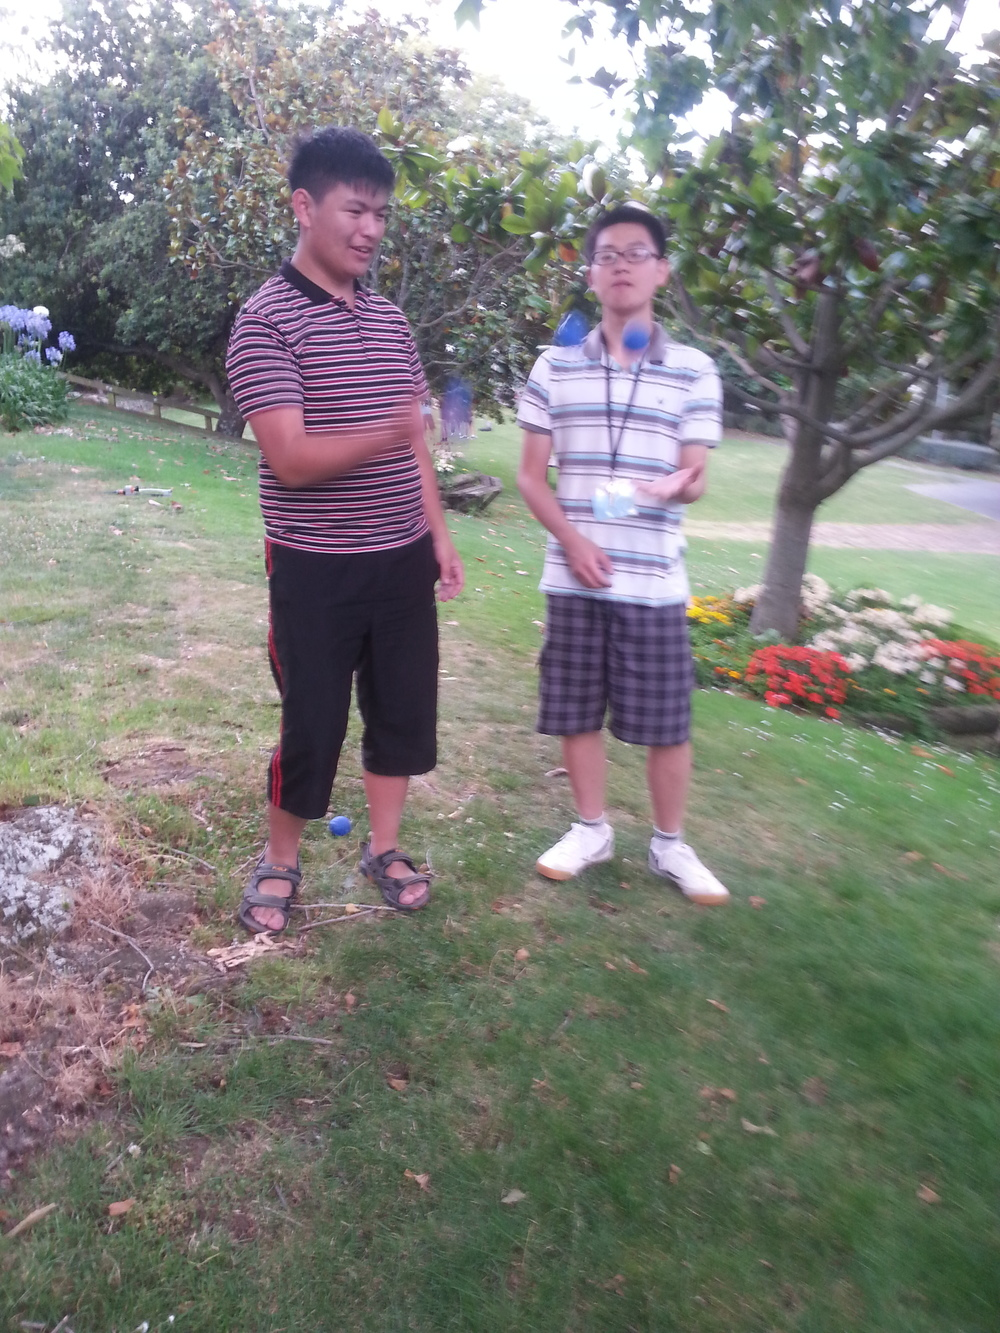 Weber Wang (left) and George Han (right) attempting to juggle with half the amount of effort needed for one man to juggle